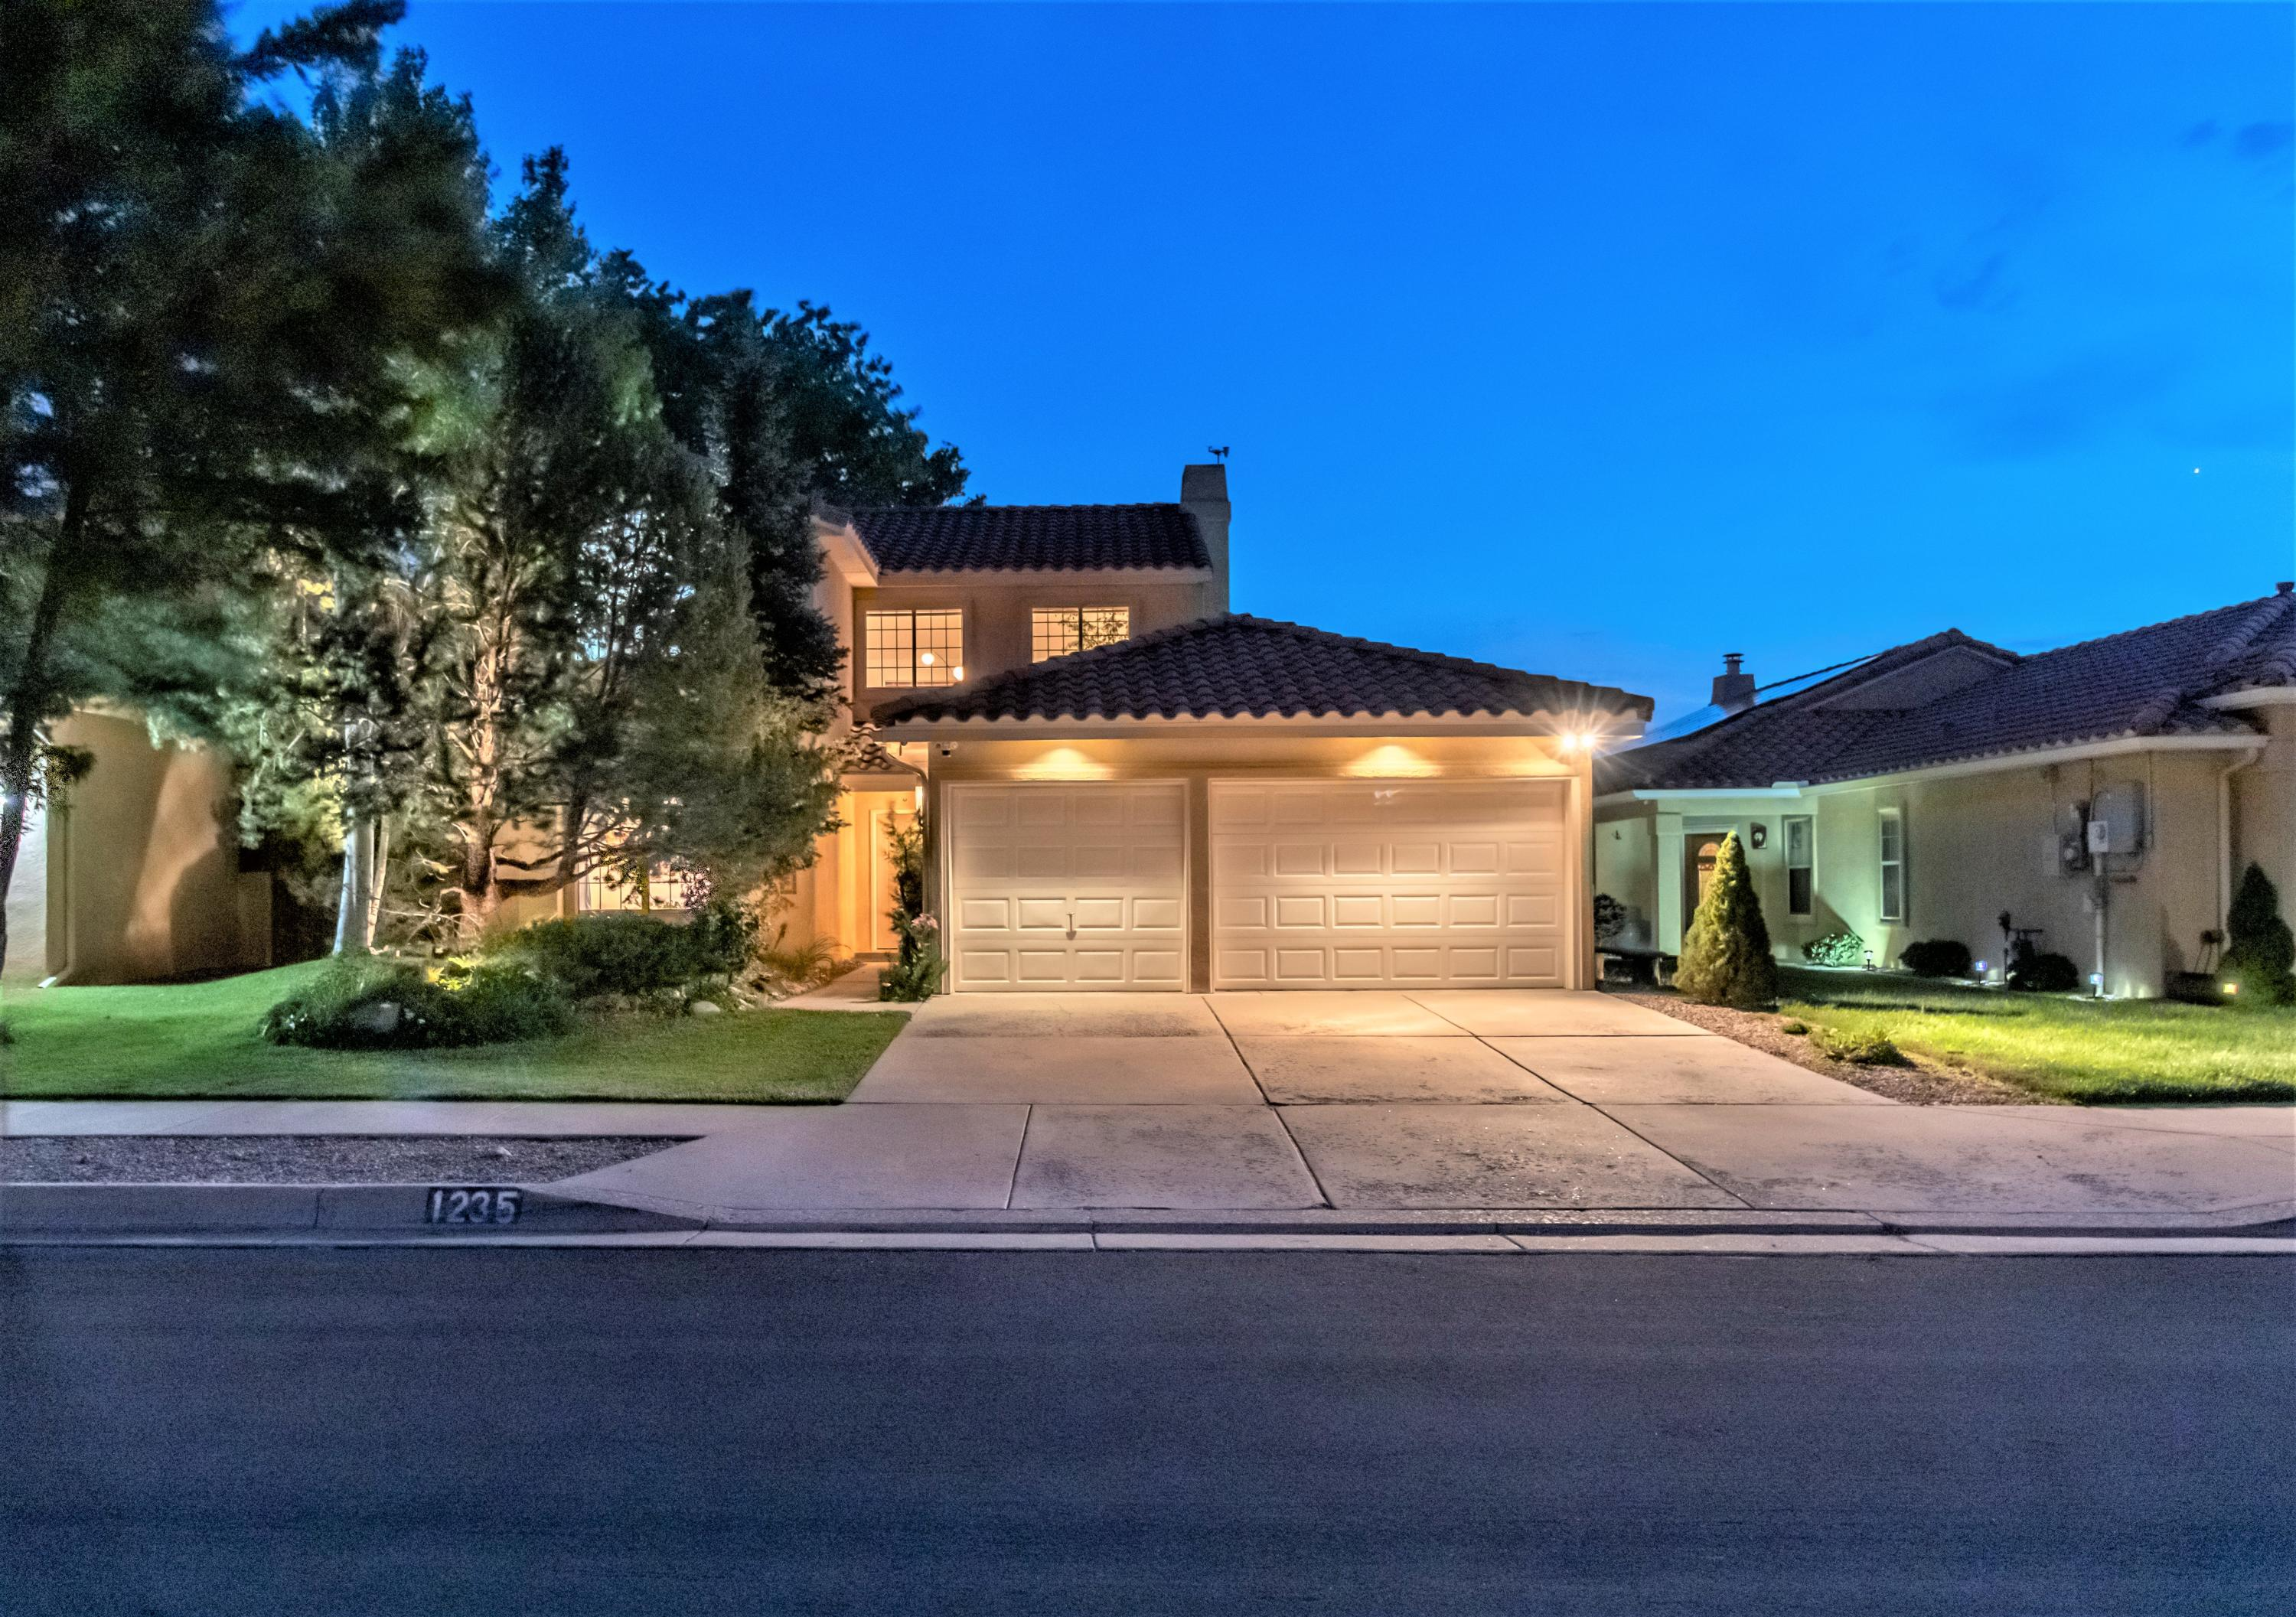 Nestled at the base of the foothills you will find this wonderful light and bright home build by Paul Newman.  This 4 bedroom 2.5 bathroom bi-level home with the main living areas on the upper level that takes advantage of the fabulous views.  Open floor plan with the great room opening up to the kitchen and dining room with a gas fireplace complete with a built in projector screen.  The primary bedroom is on the main floor with its own access to the back yard.  All secondary bedroom are good sized.  The three car garage with lots of shelving for extra storage.  This is definitely a must see .